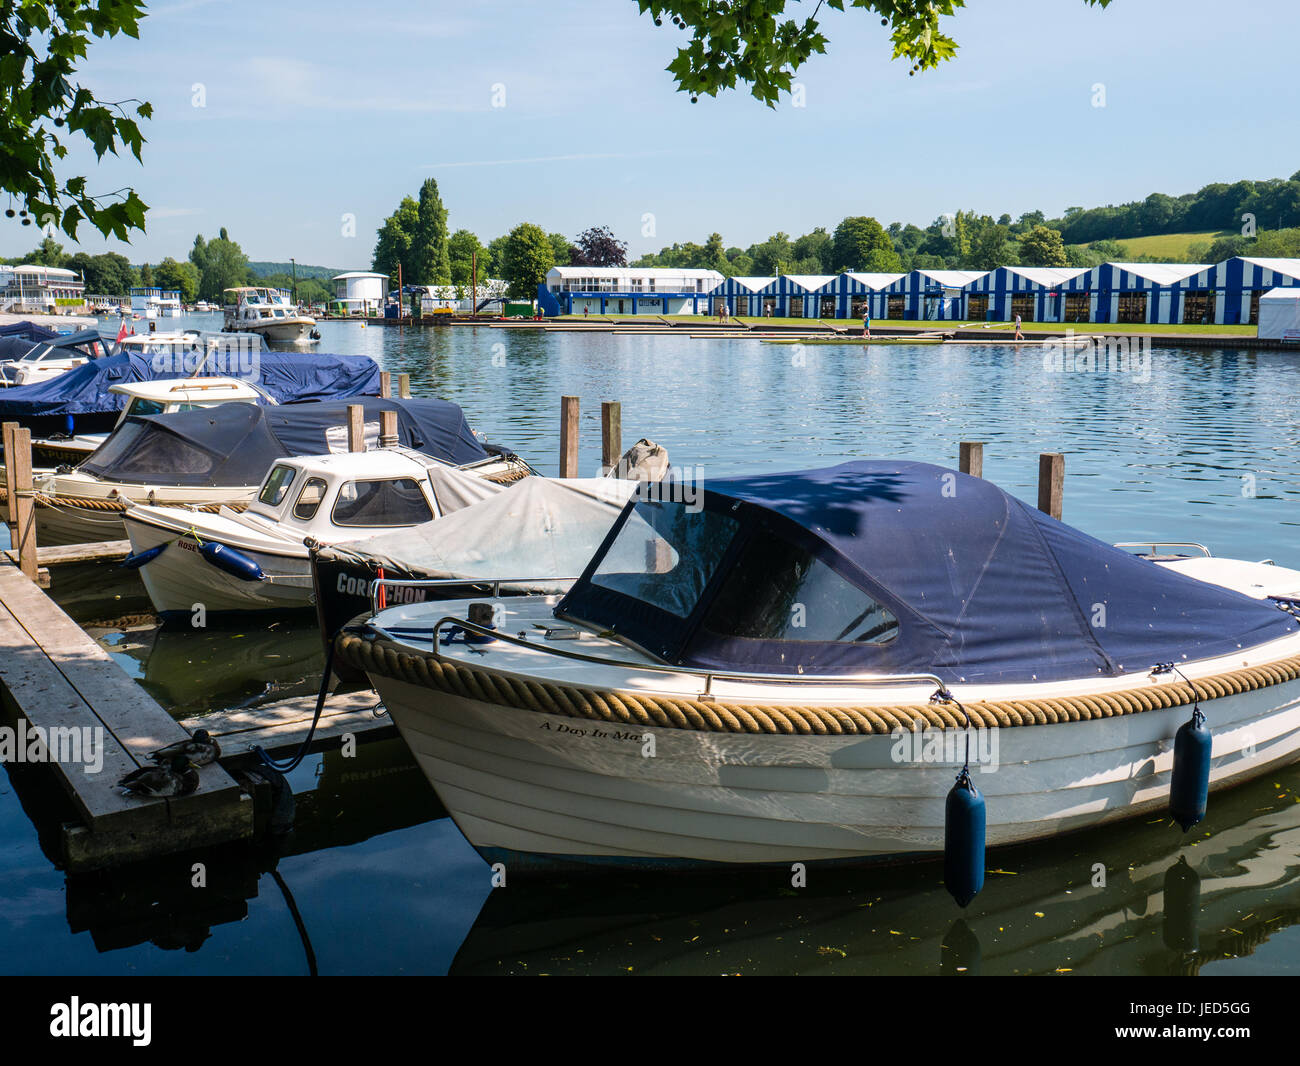 Small Boats with Rowing club in Background, Henley-on-Thames, Oxfordshire, England - Stock Image